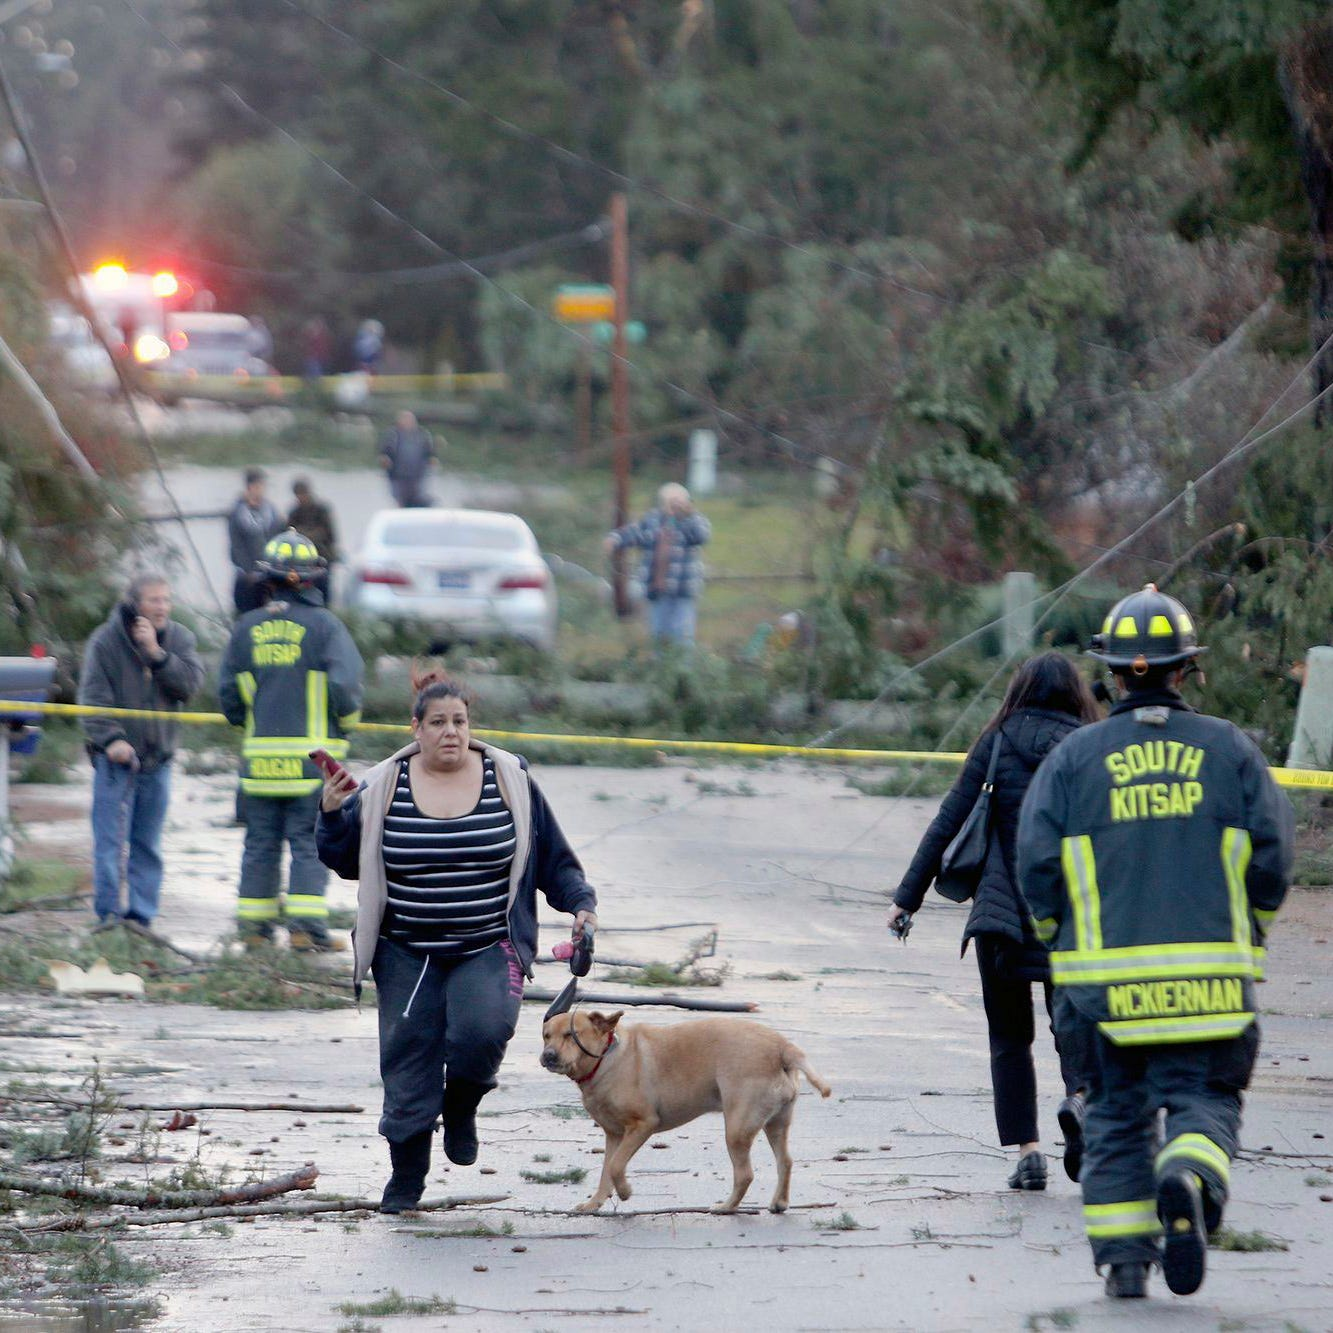 Rare tornado touches down in Seattle suburb, damaging several homes